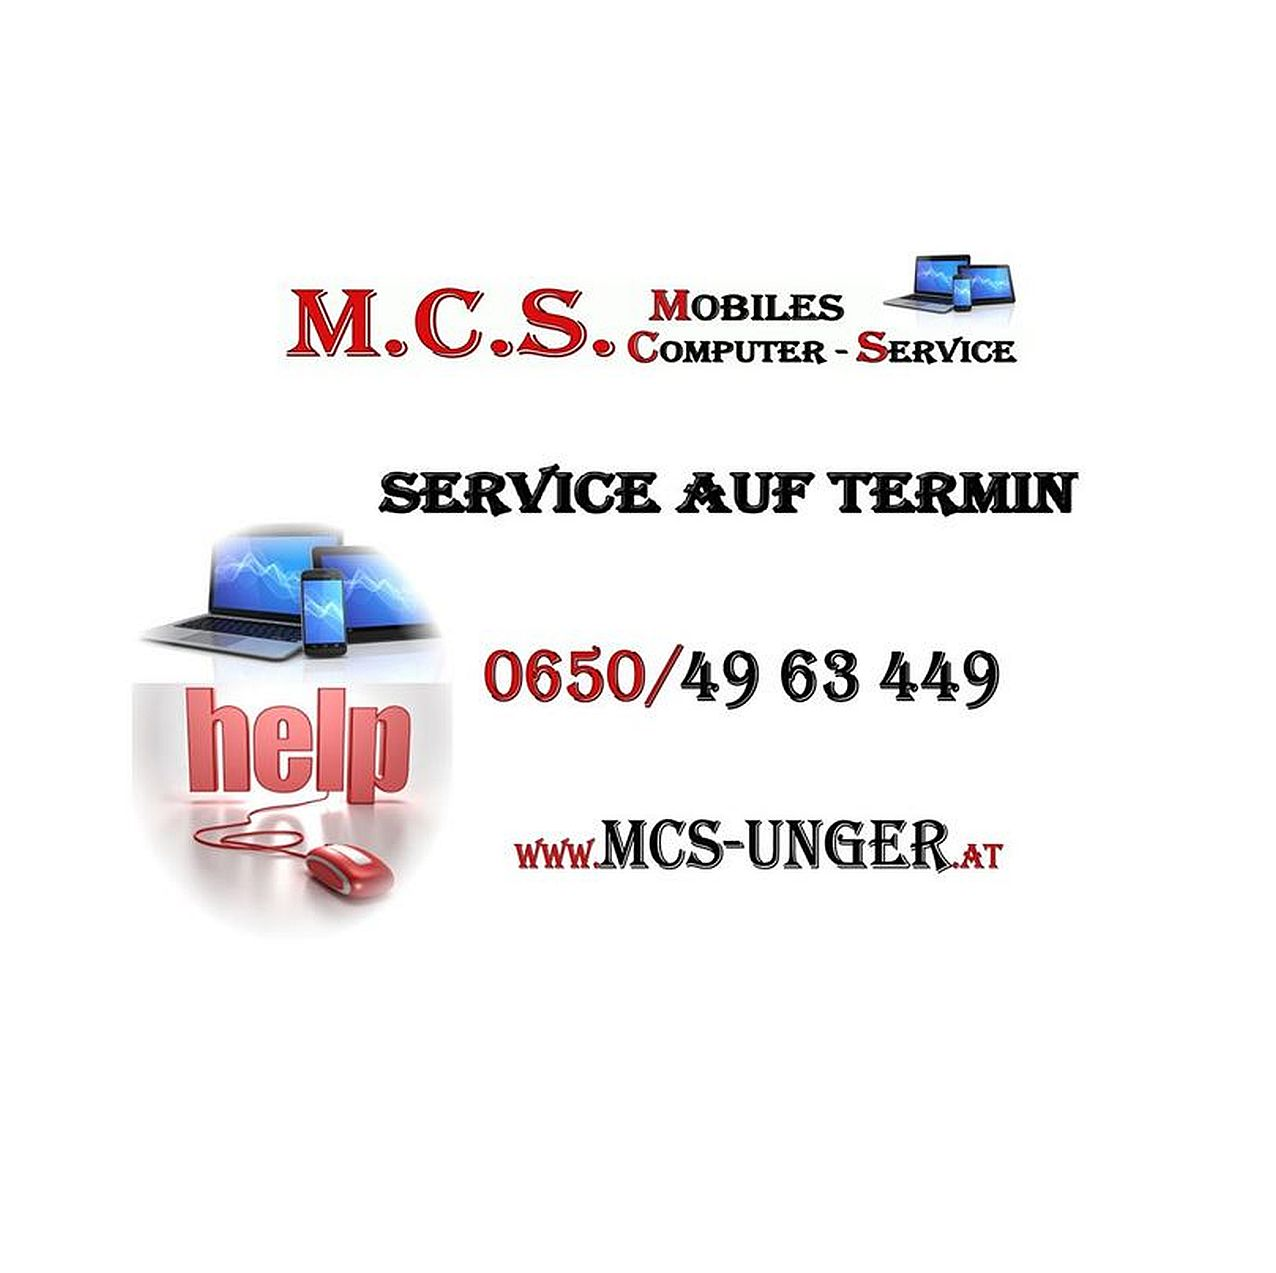 MCS-UNGER Mobiles Computer Service